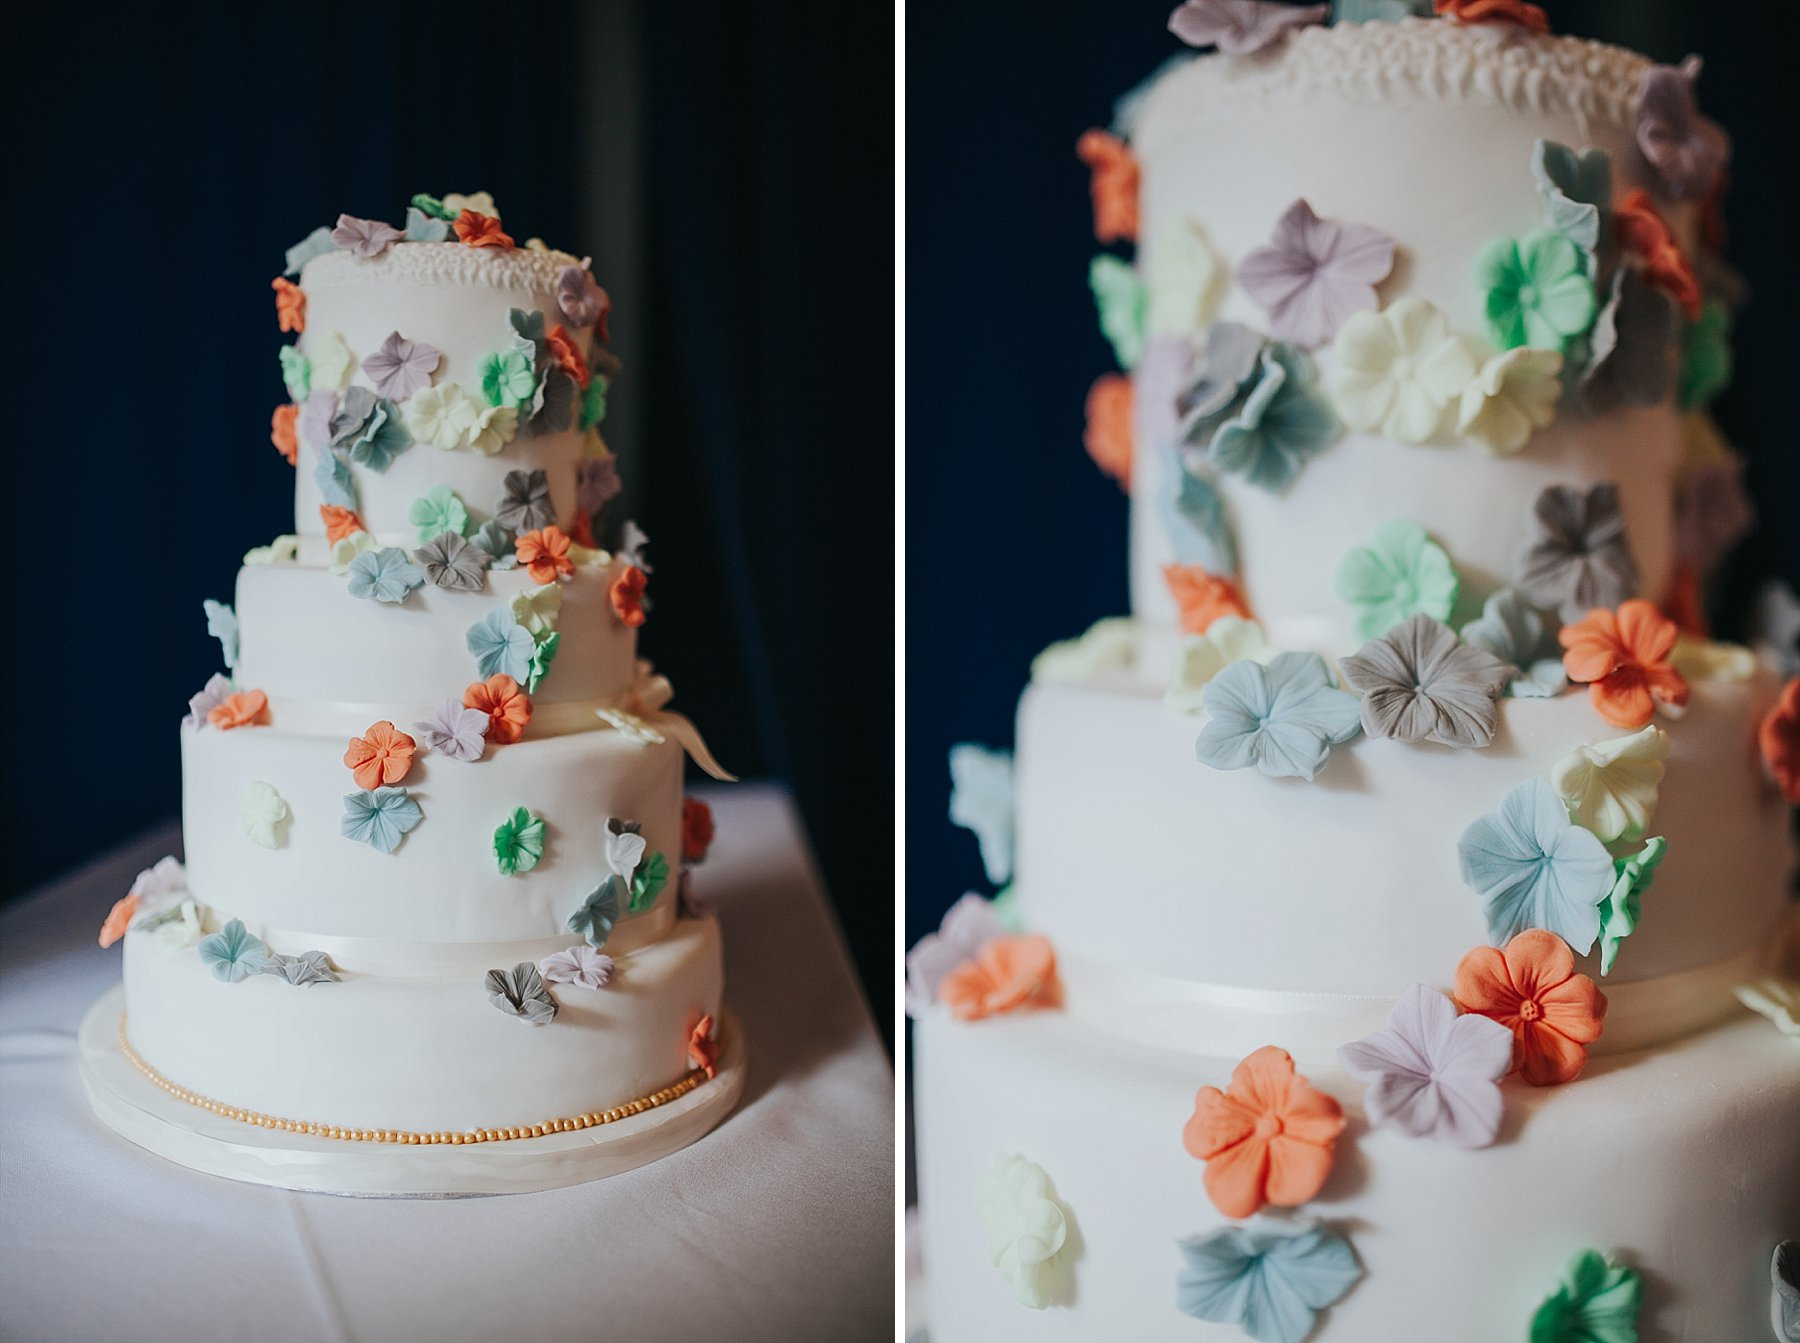 212 colourful flower covered wedding cake.jpg